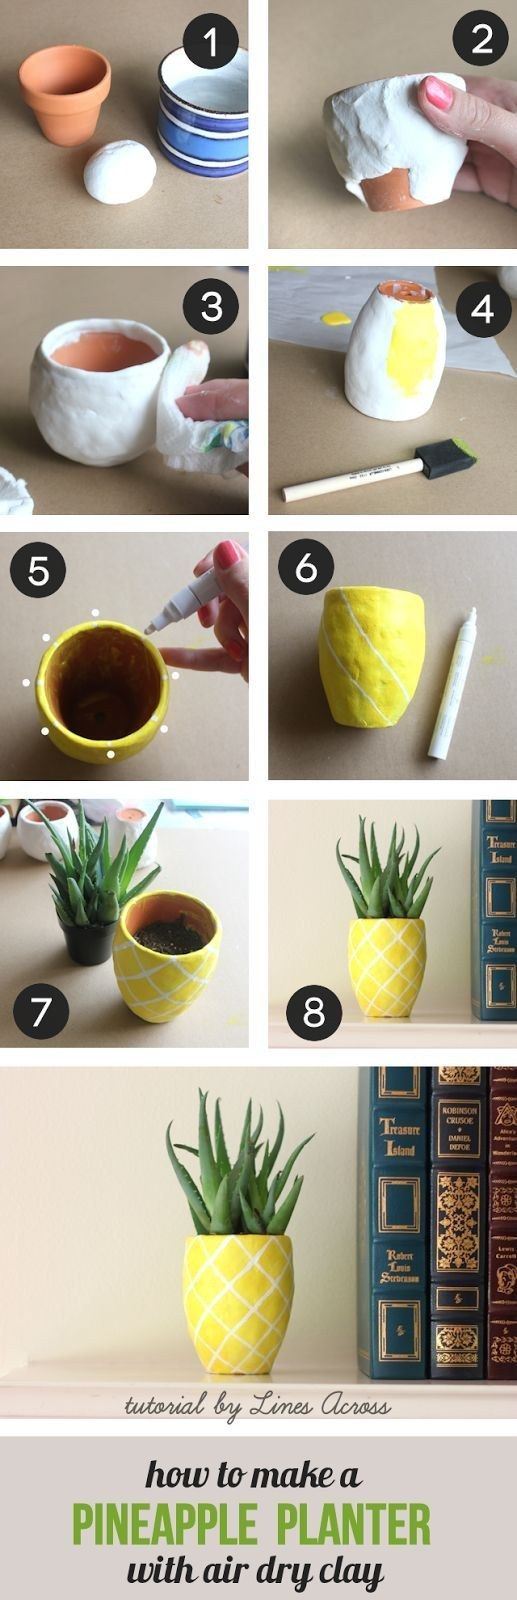 2 Cutest DIY Projects You Must Finish